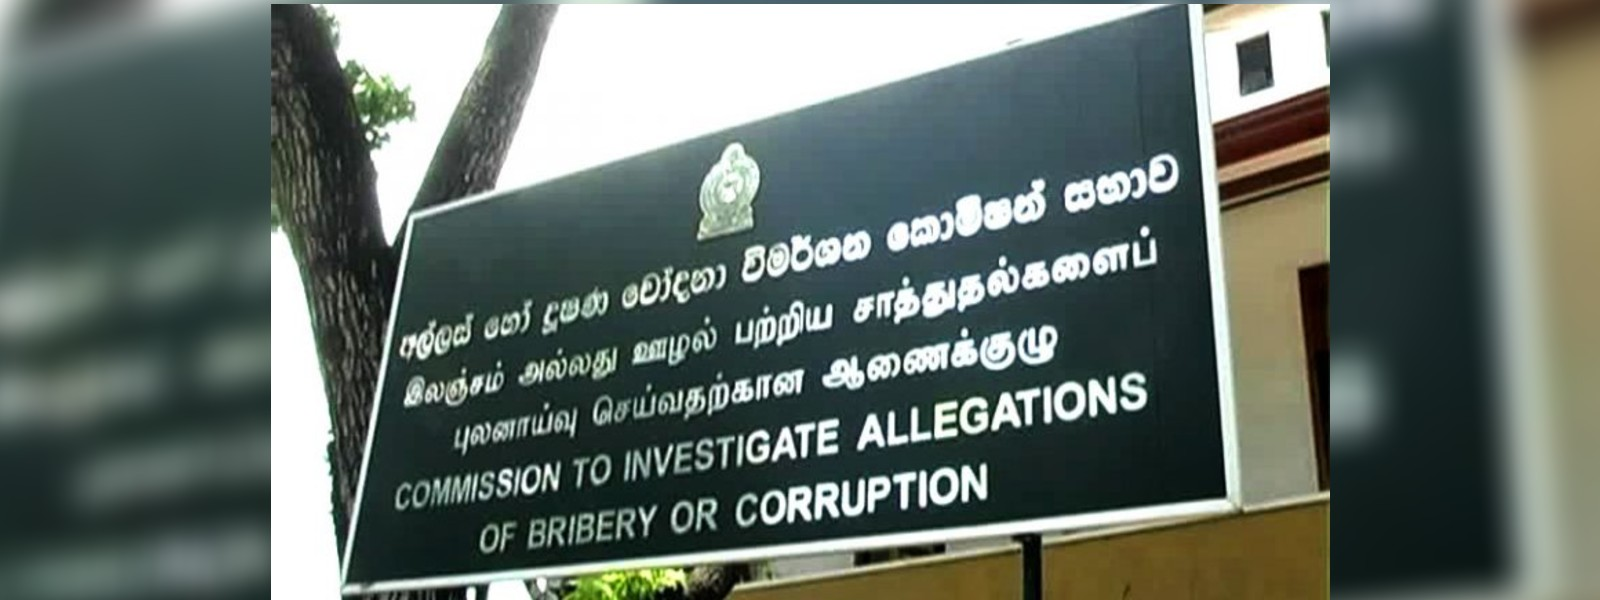 Over 900 bribery complaints so far this year